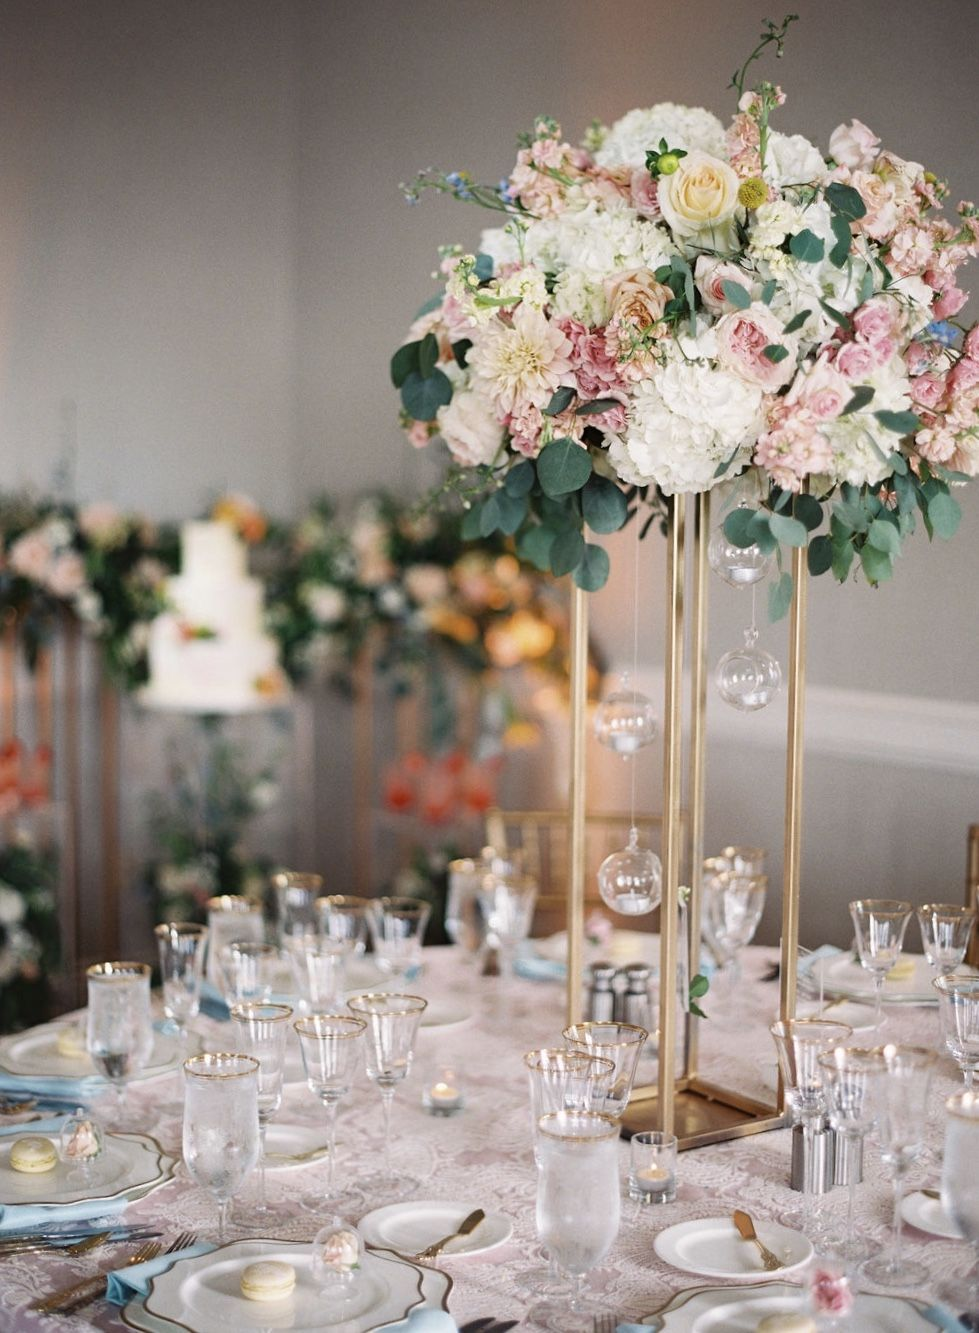 Pink And Blue Themed Table Setting For Wedding Banquet At Ritz Carlton Half Moon Pink And Blue Themed Table Setting For Wedding Banquet Dugun Fikirler Nisan